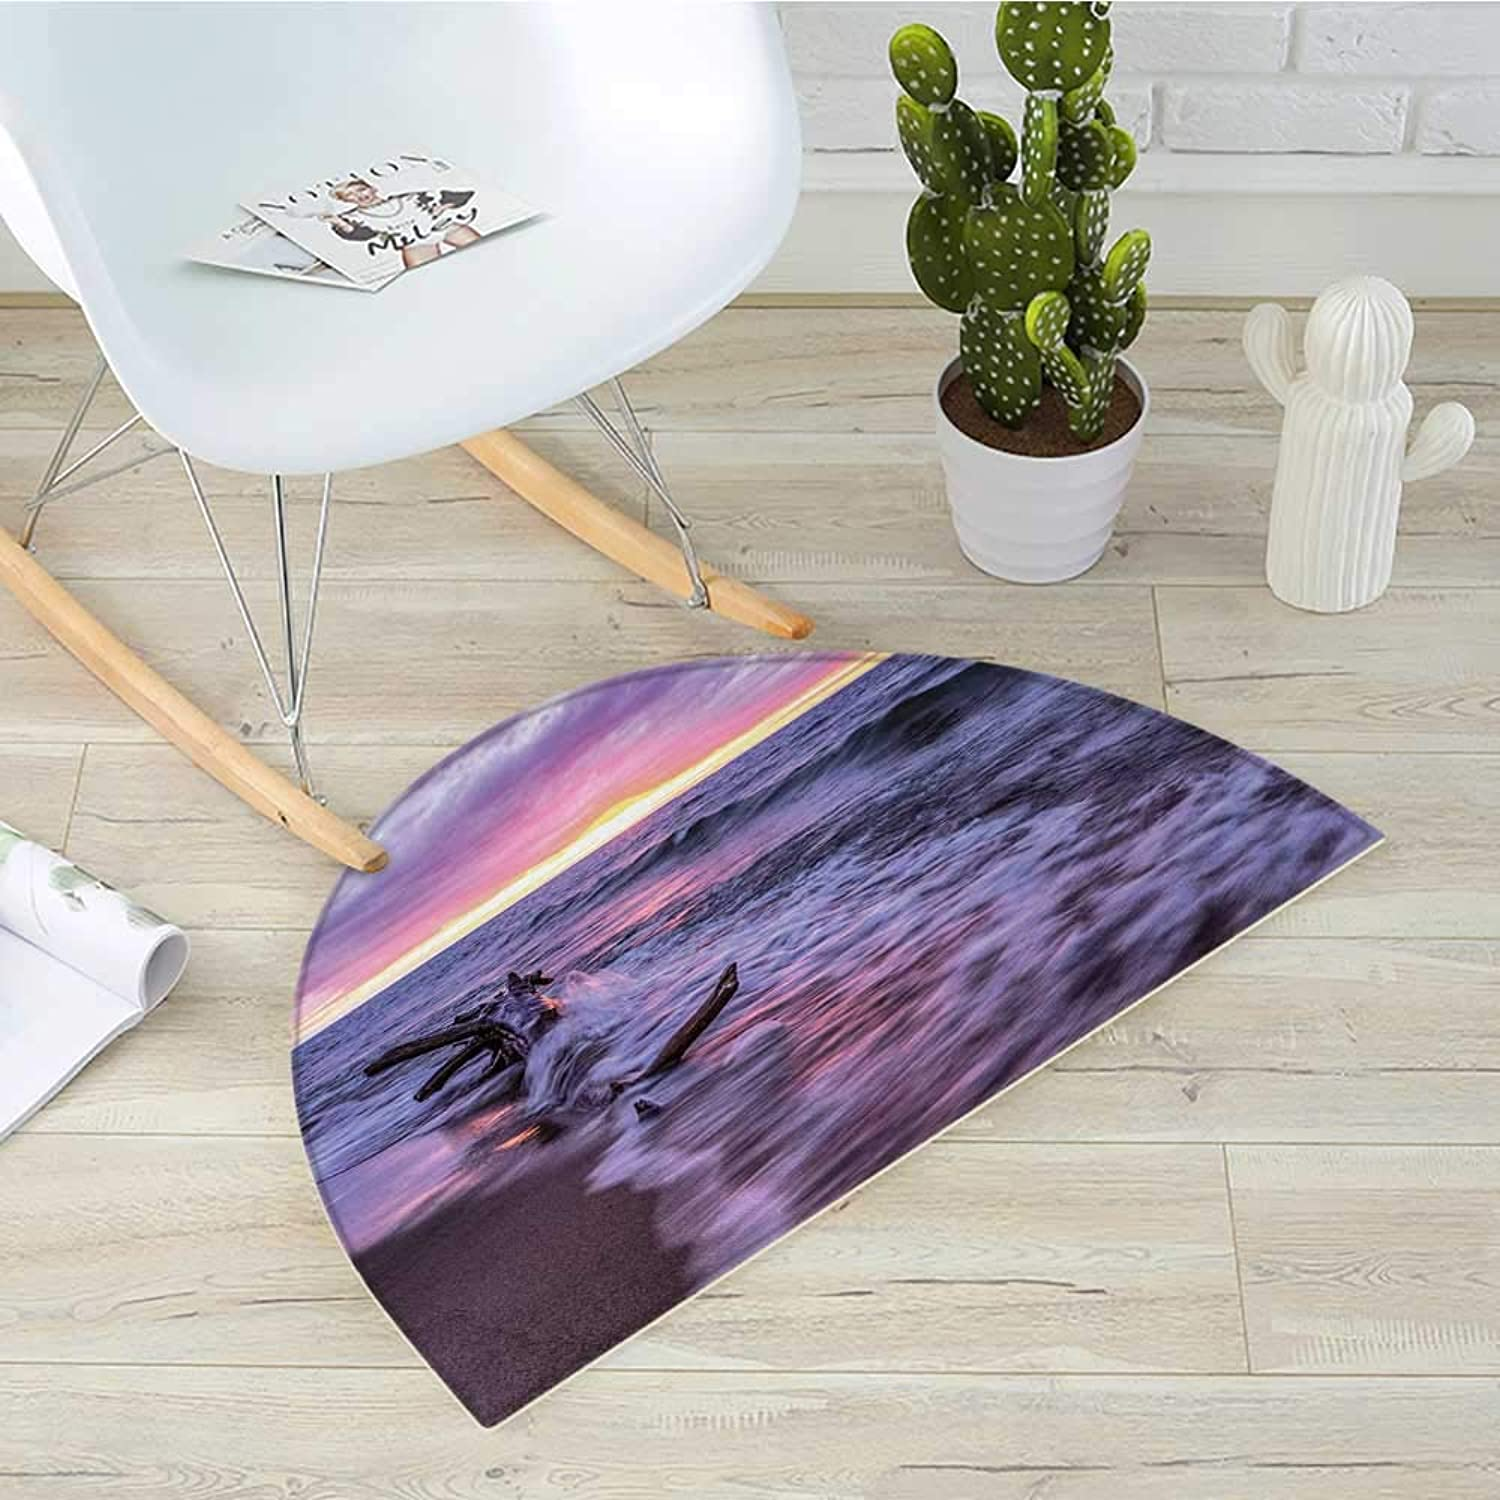 Driftwood Semicircle Doormat Driftwood Beach Landscape Wavy Sea and Cloudy Sky at Sunset Digital Image Print Halfmoon doormats H 39.3  xD 59  bluee Grey